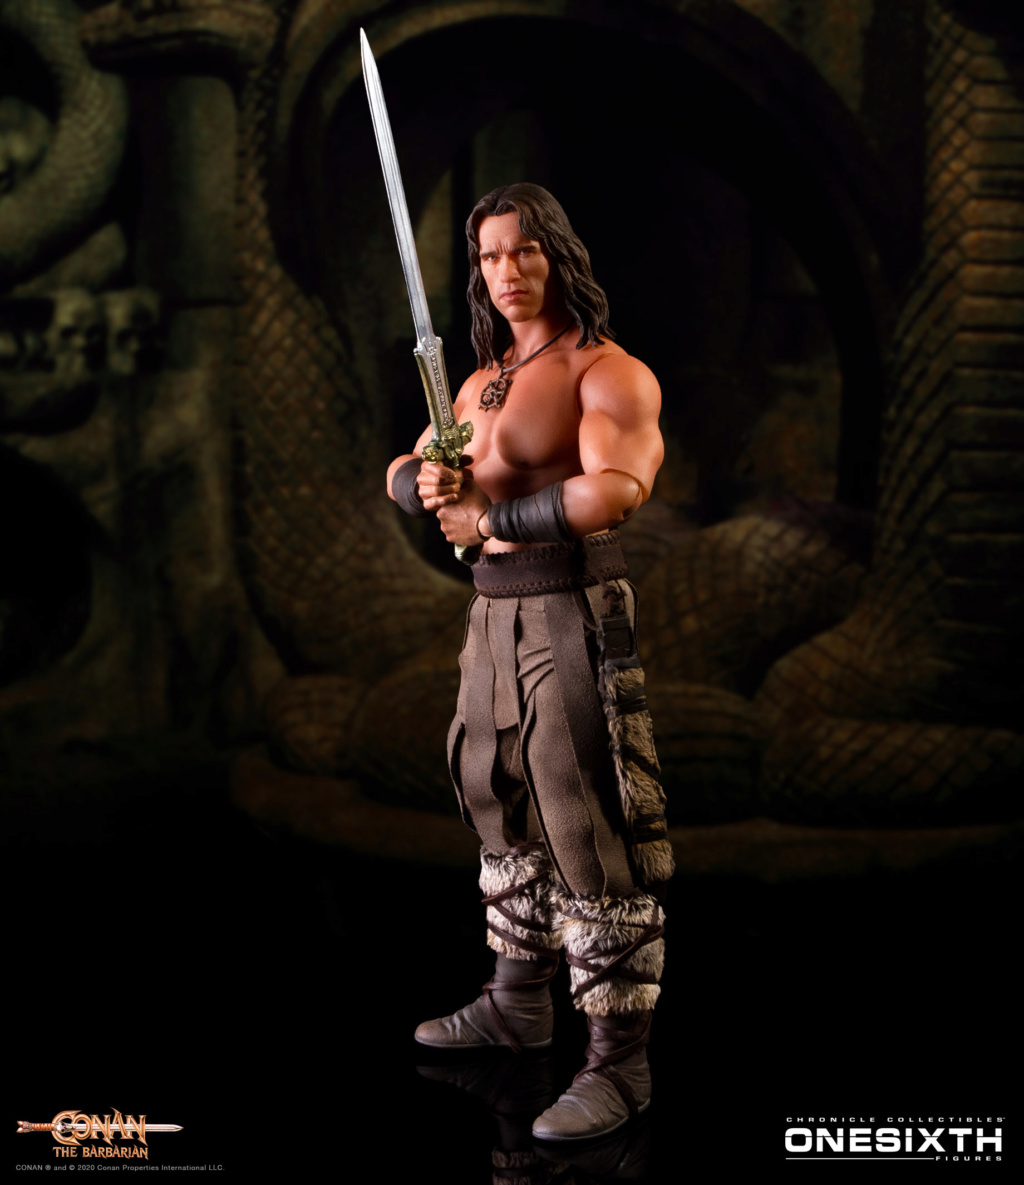 NEW PRODUCT: Chronicle Collectibles: OneSixth Conan the Barbarian Figure Chroni11